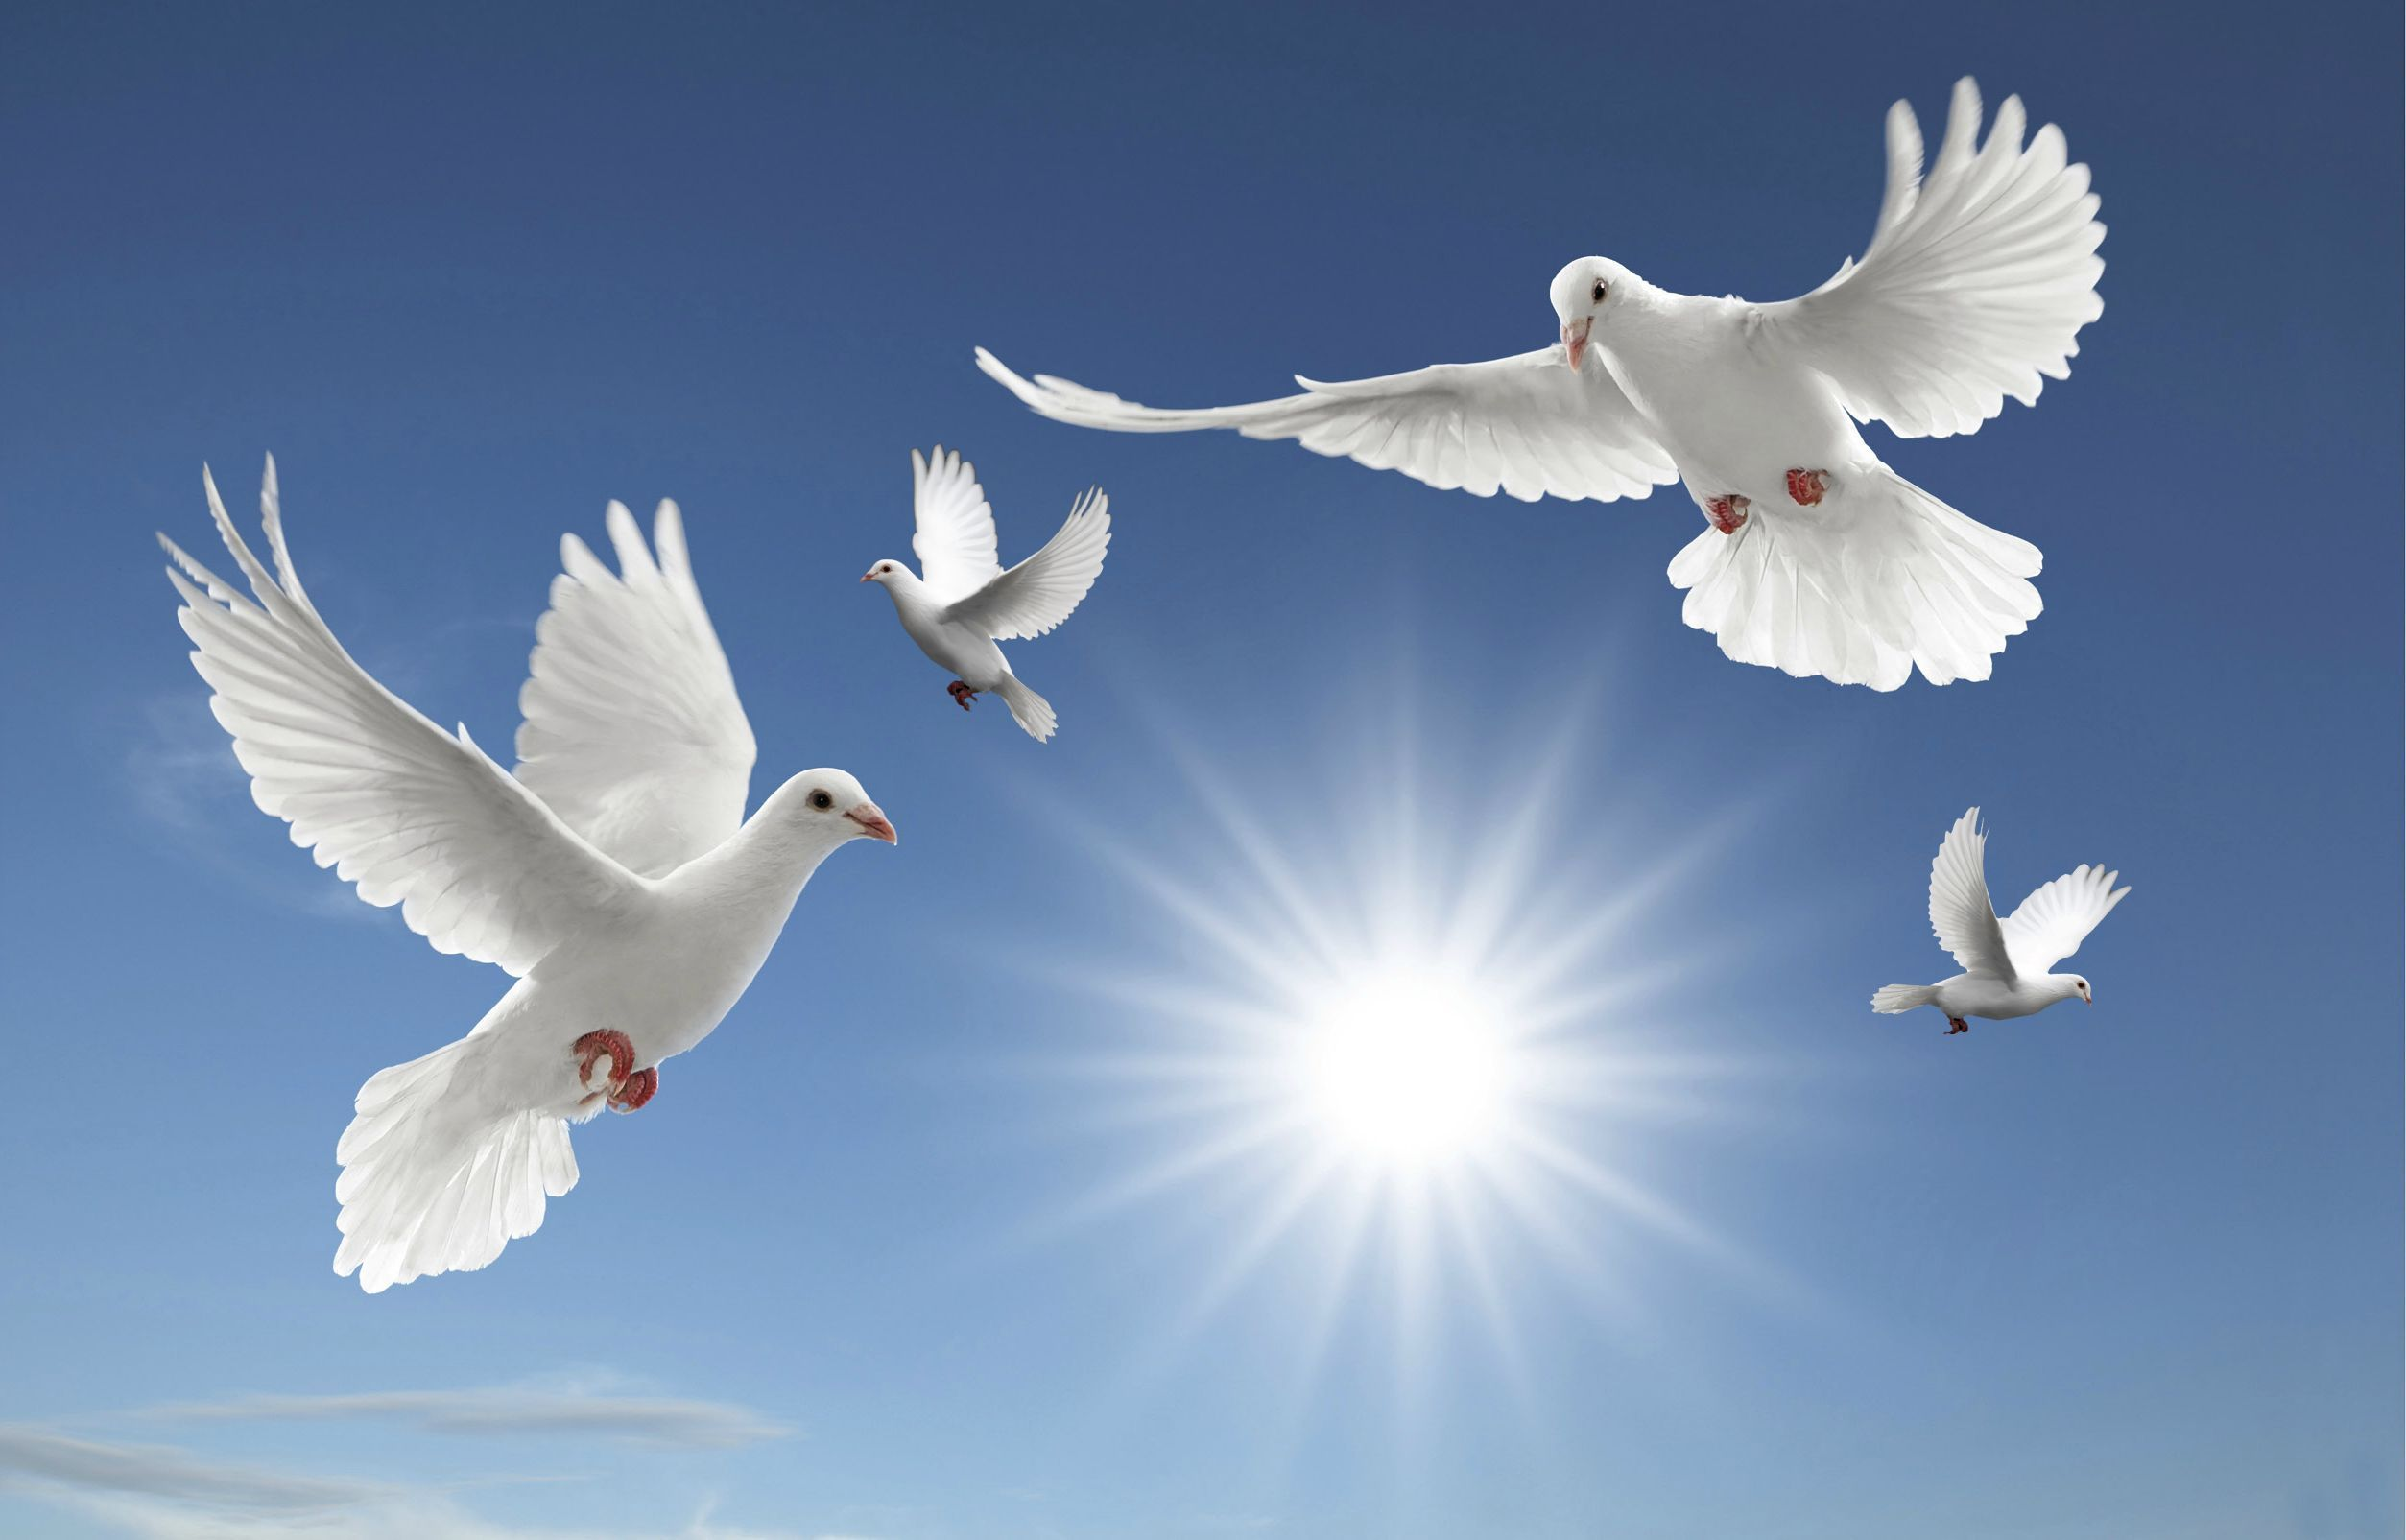 Dove Wallpapers: Find best latest Dove Wallpapers in HD for your PC